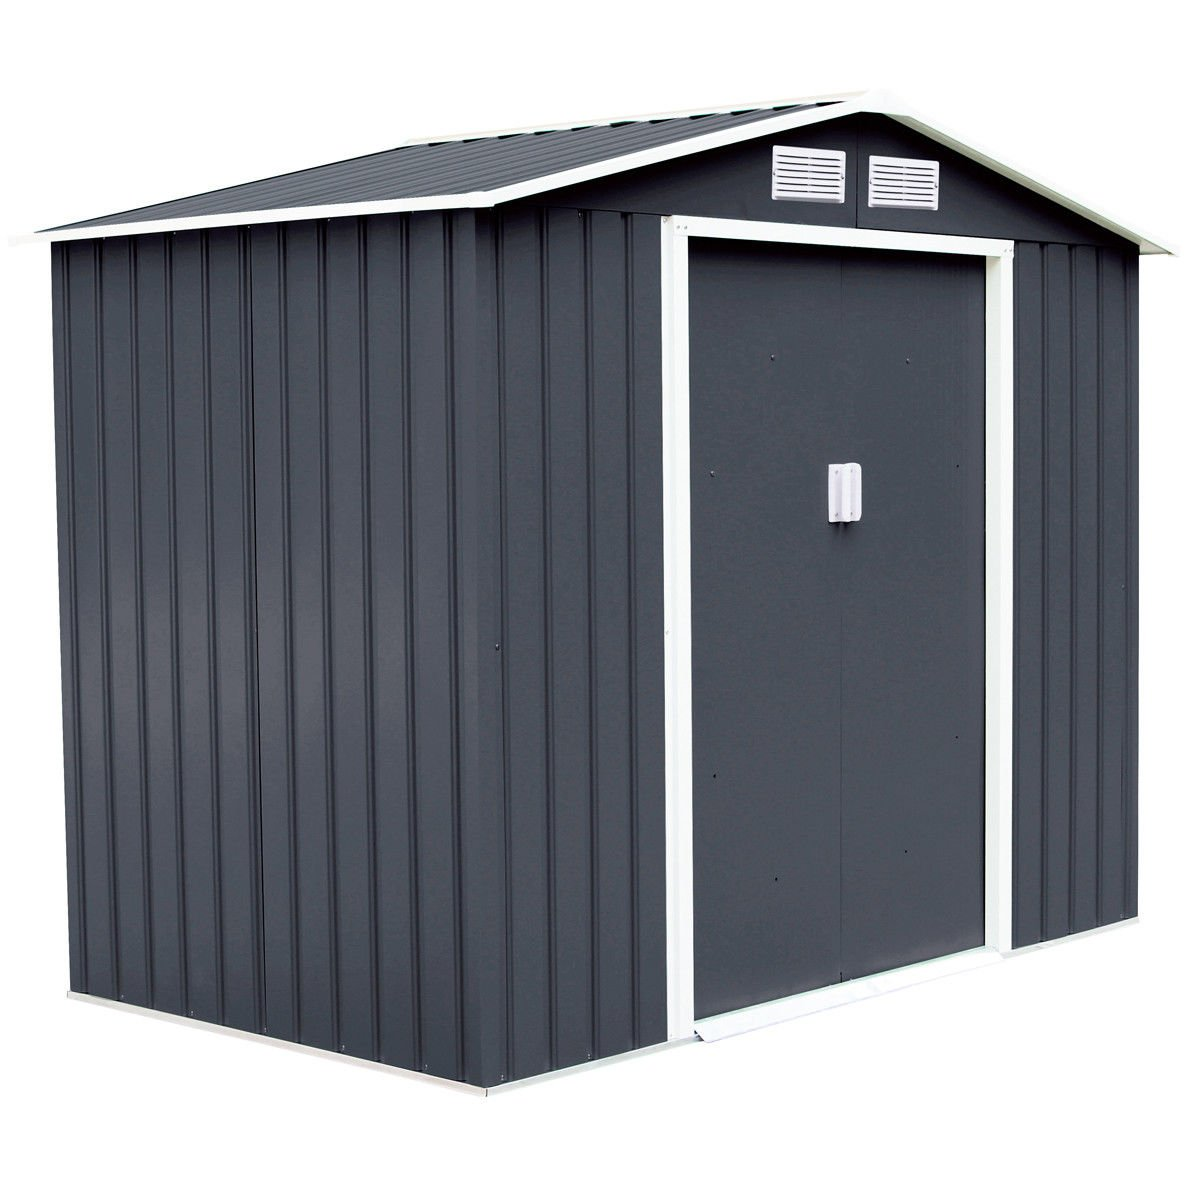 Goplus 7' X 4' Outdoor Storage Shed Tool House Sliding Door Steel Garden Backyard Sheds (Gray)